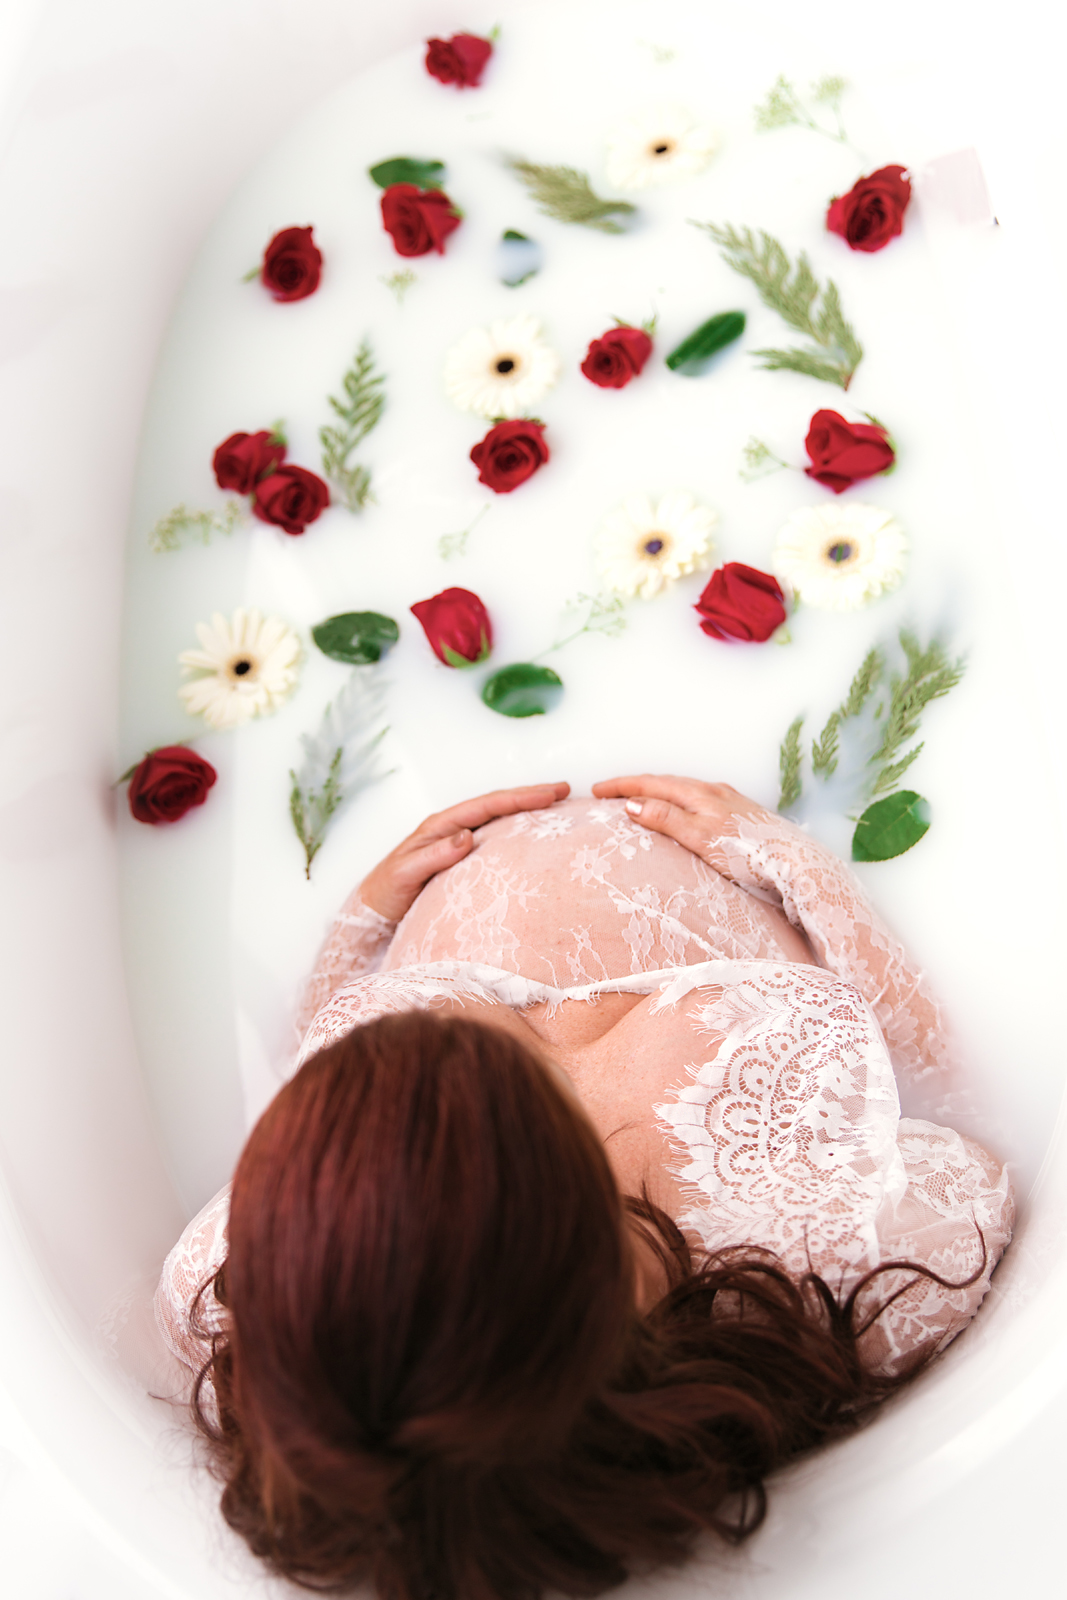 Milk Bath maternity session. Mom-to-be in the bathtub full of milk and flowers. Calgary and area maternity photographer - Milashka Photography